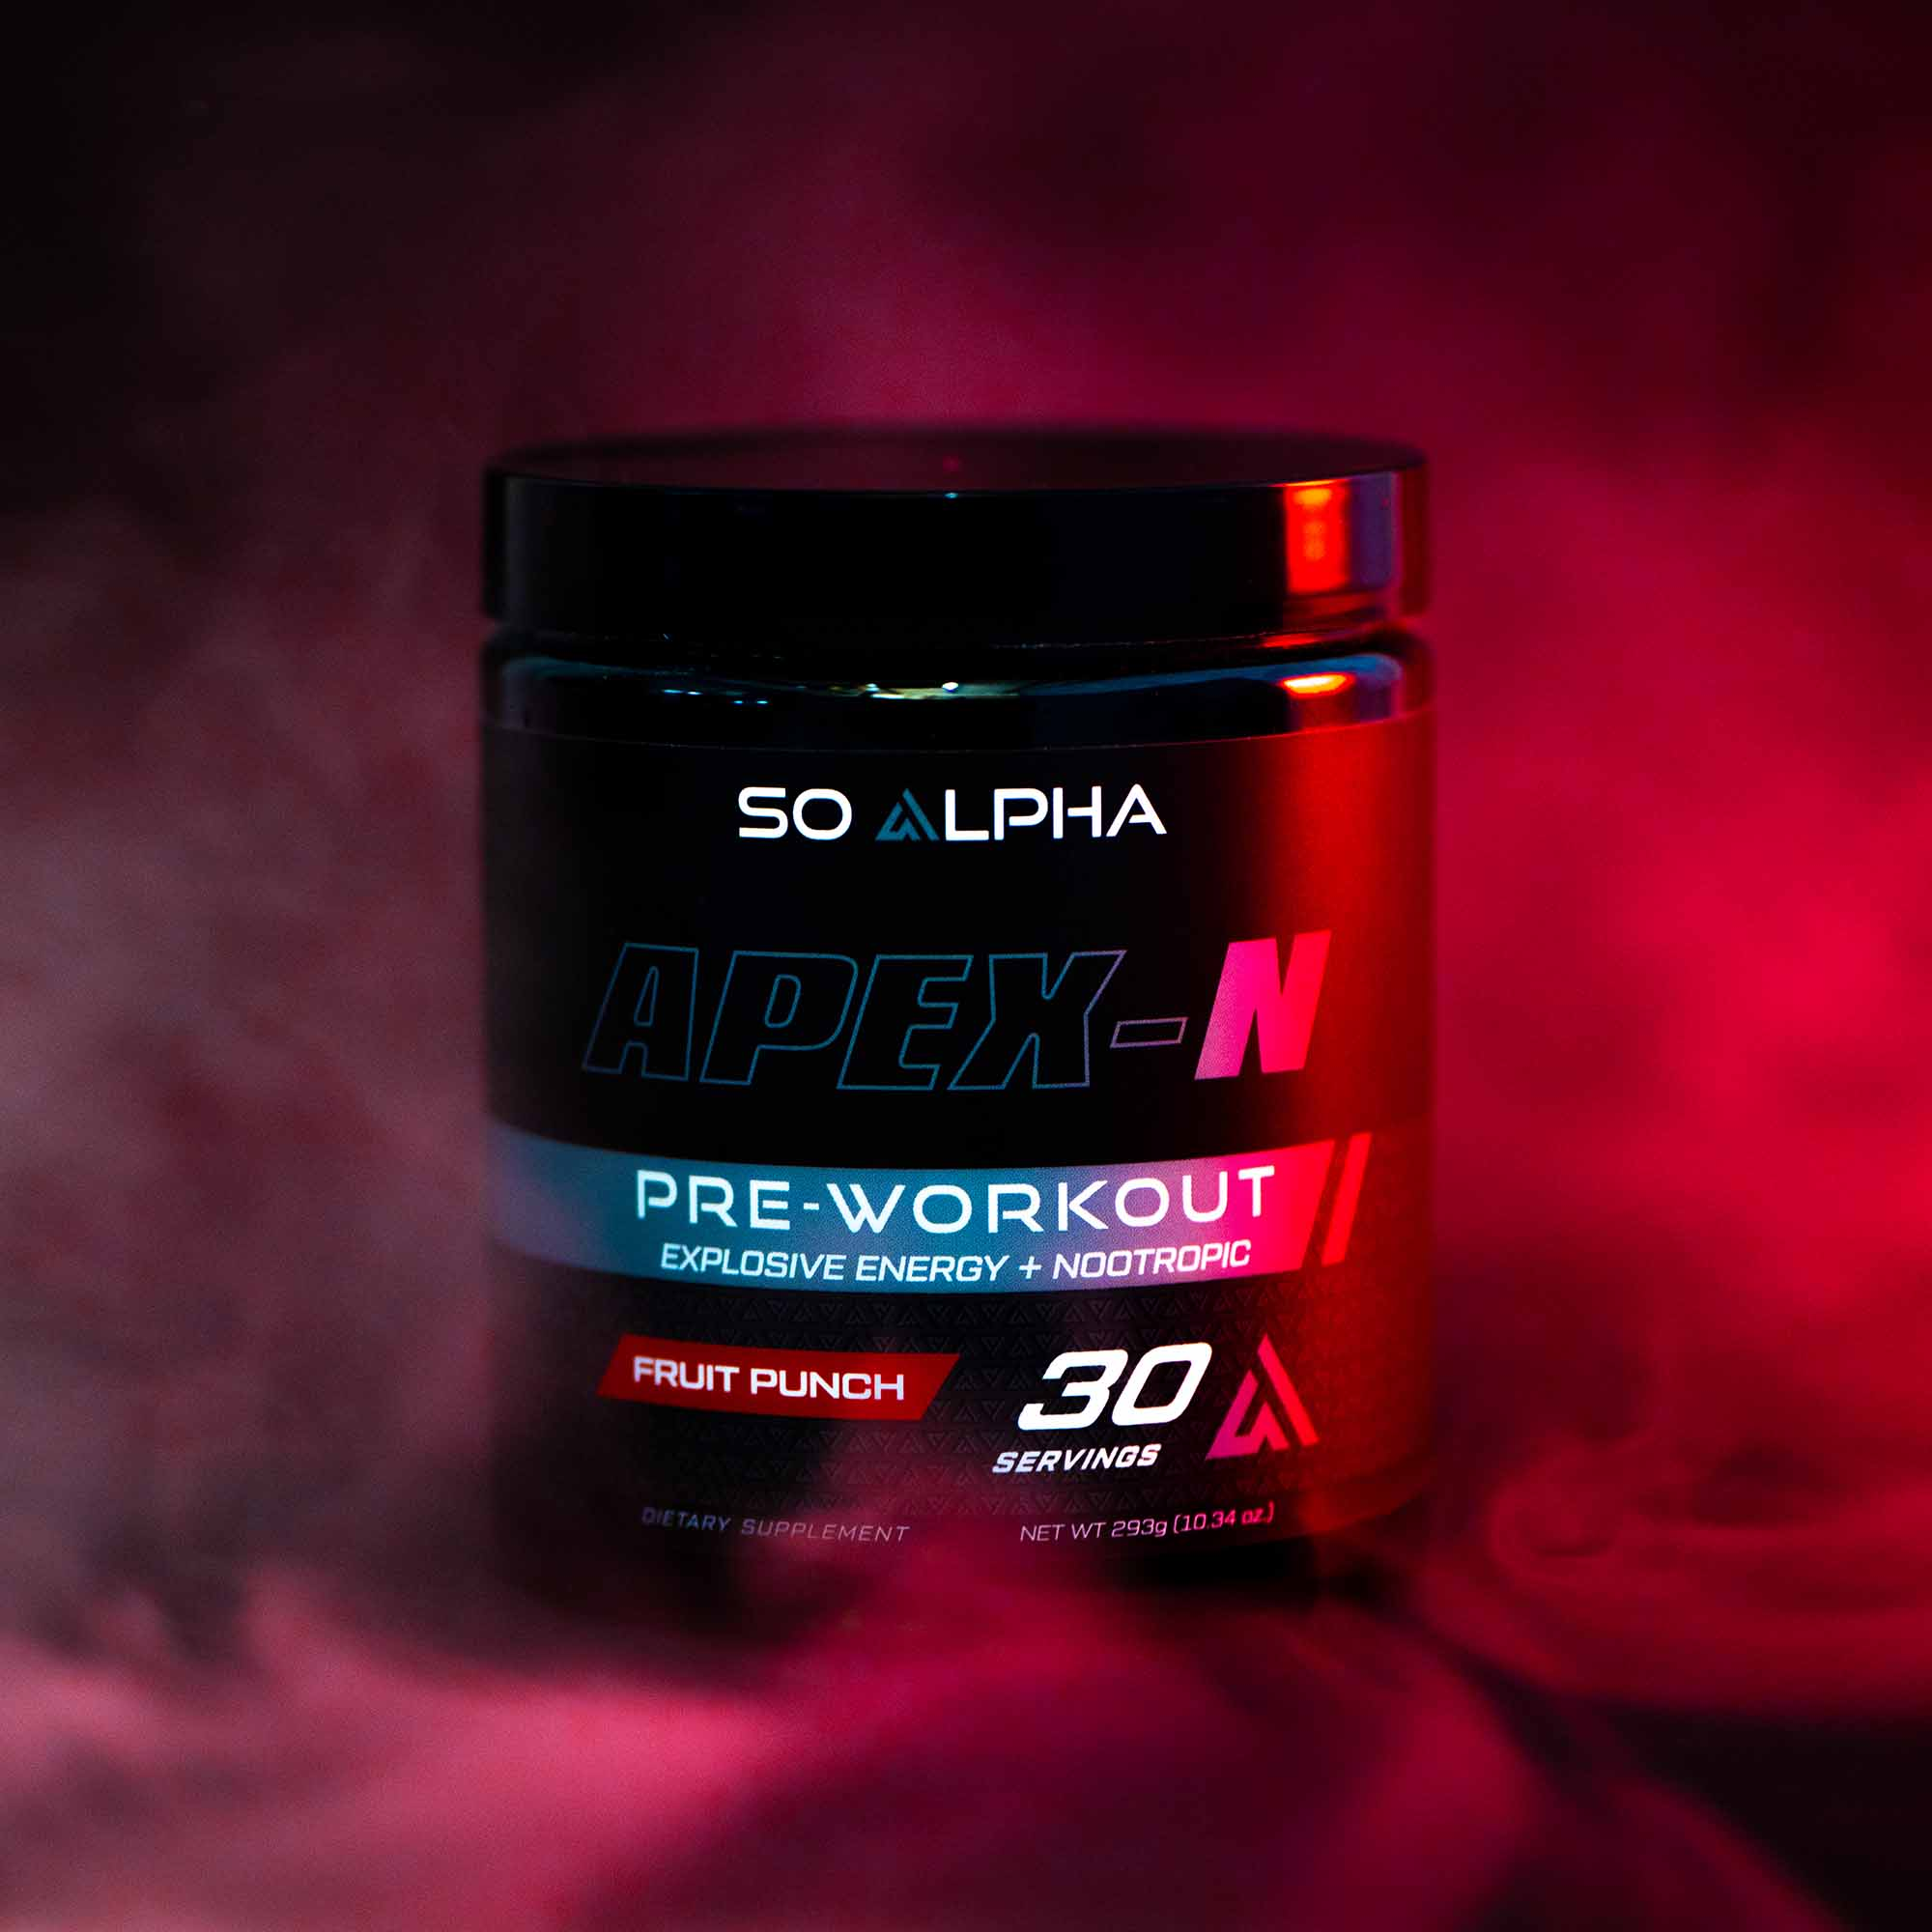 Supplement Product Photo with Effects